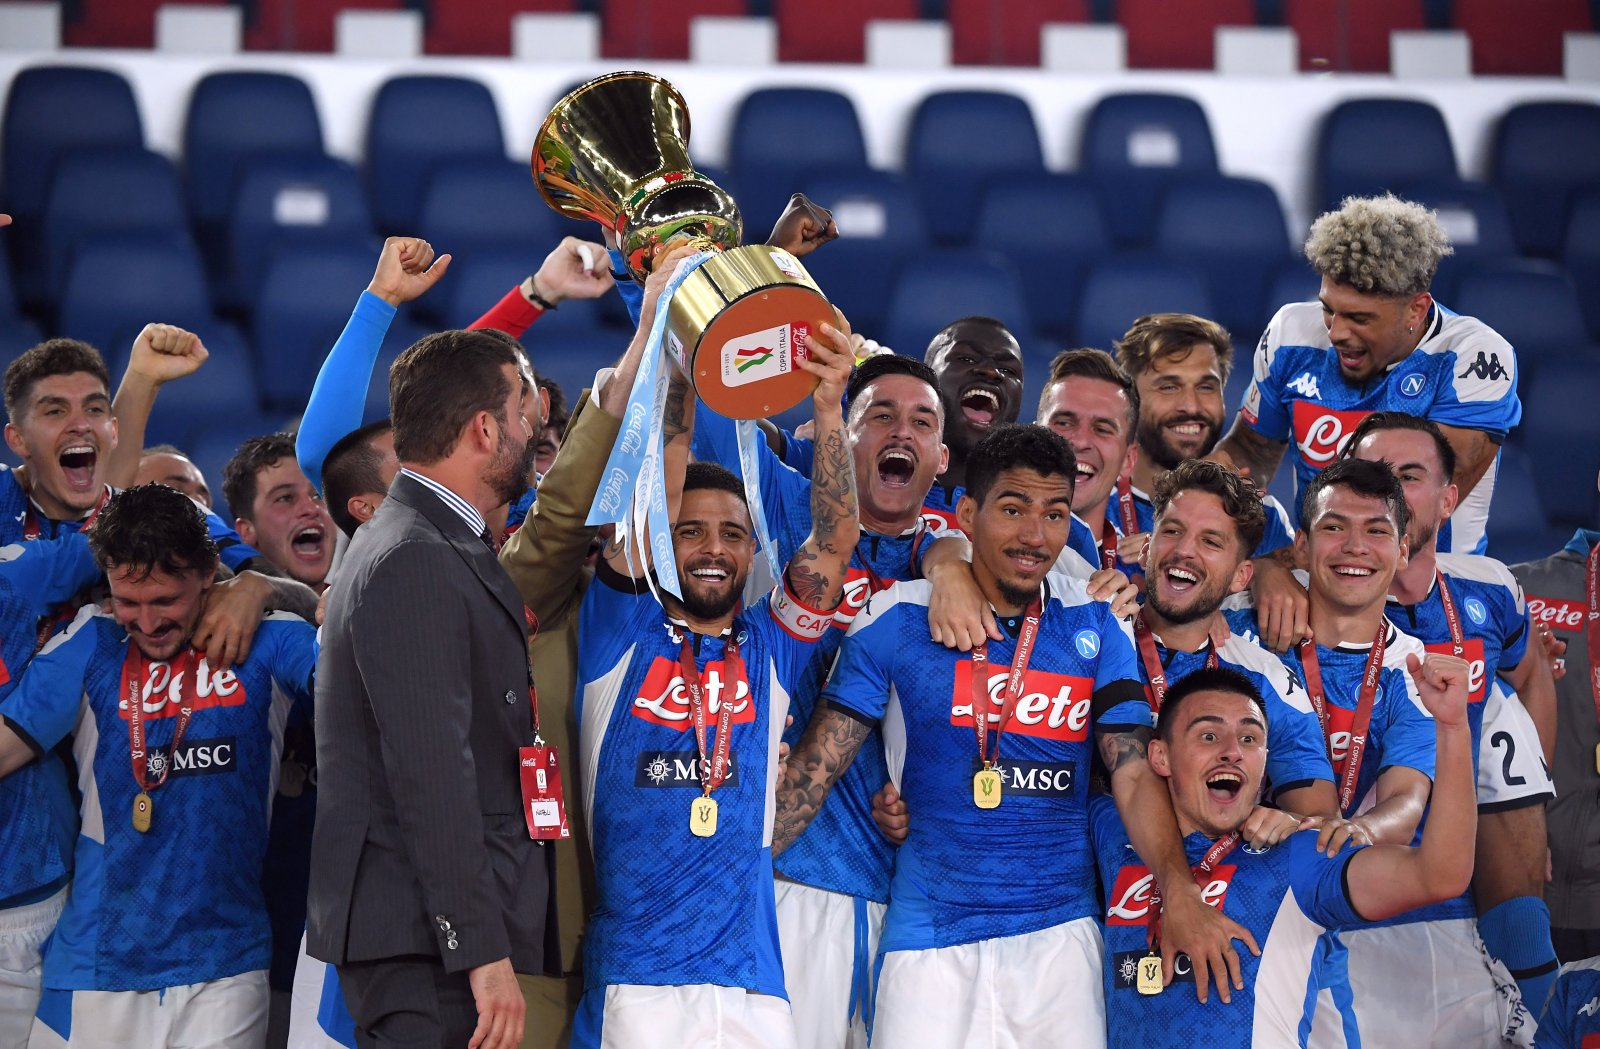 Category: Coppa Italia Match Reports